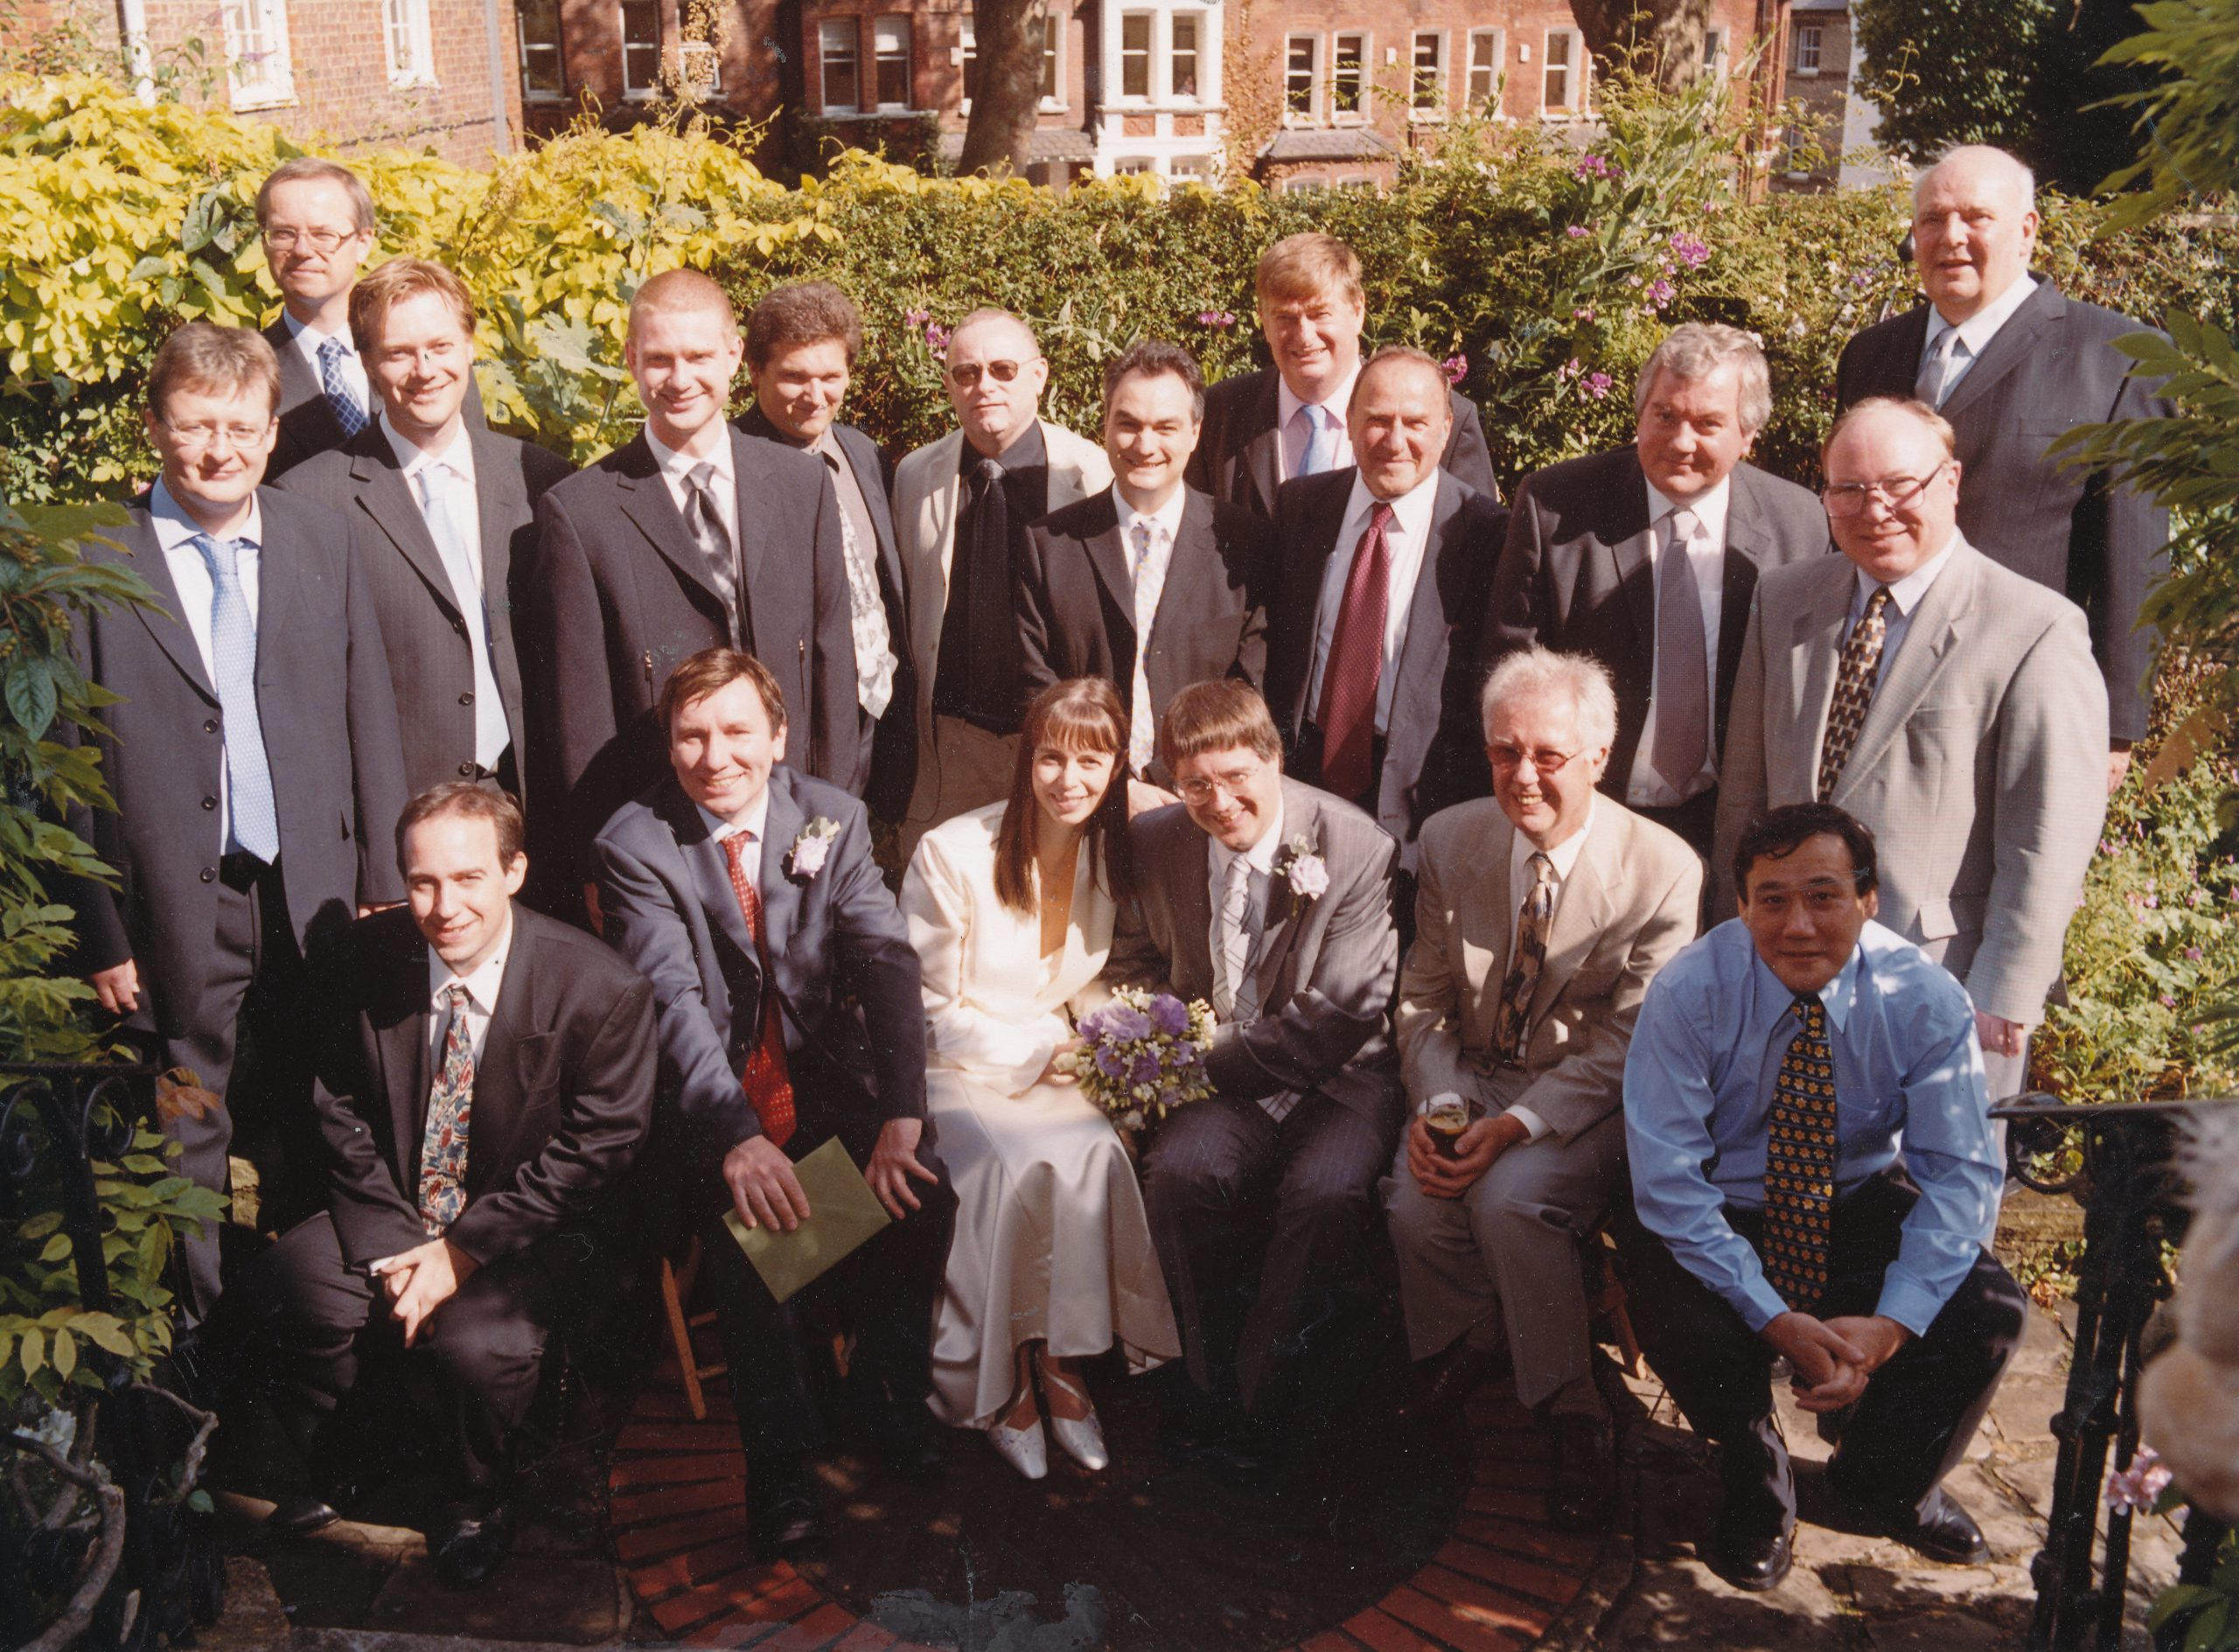 James Sherwin, middle row, third from right